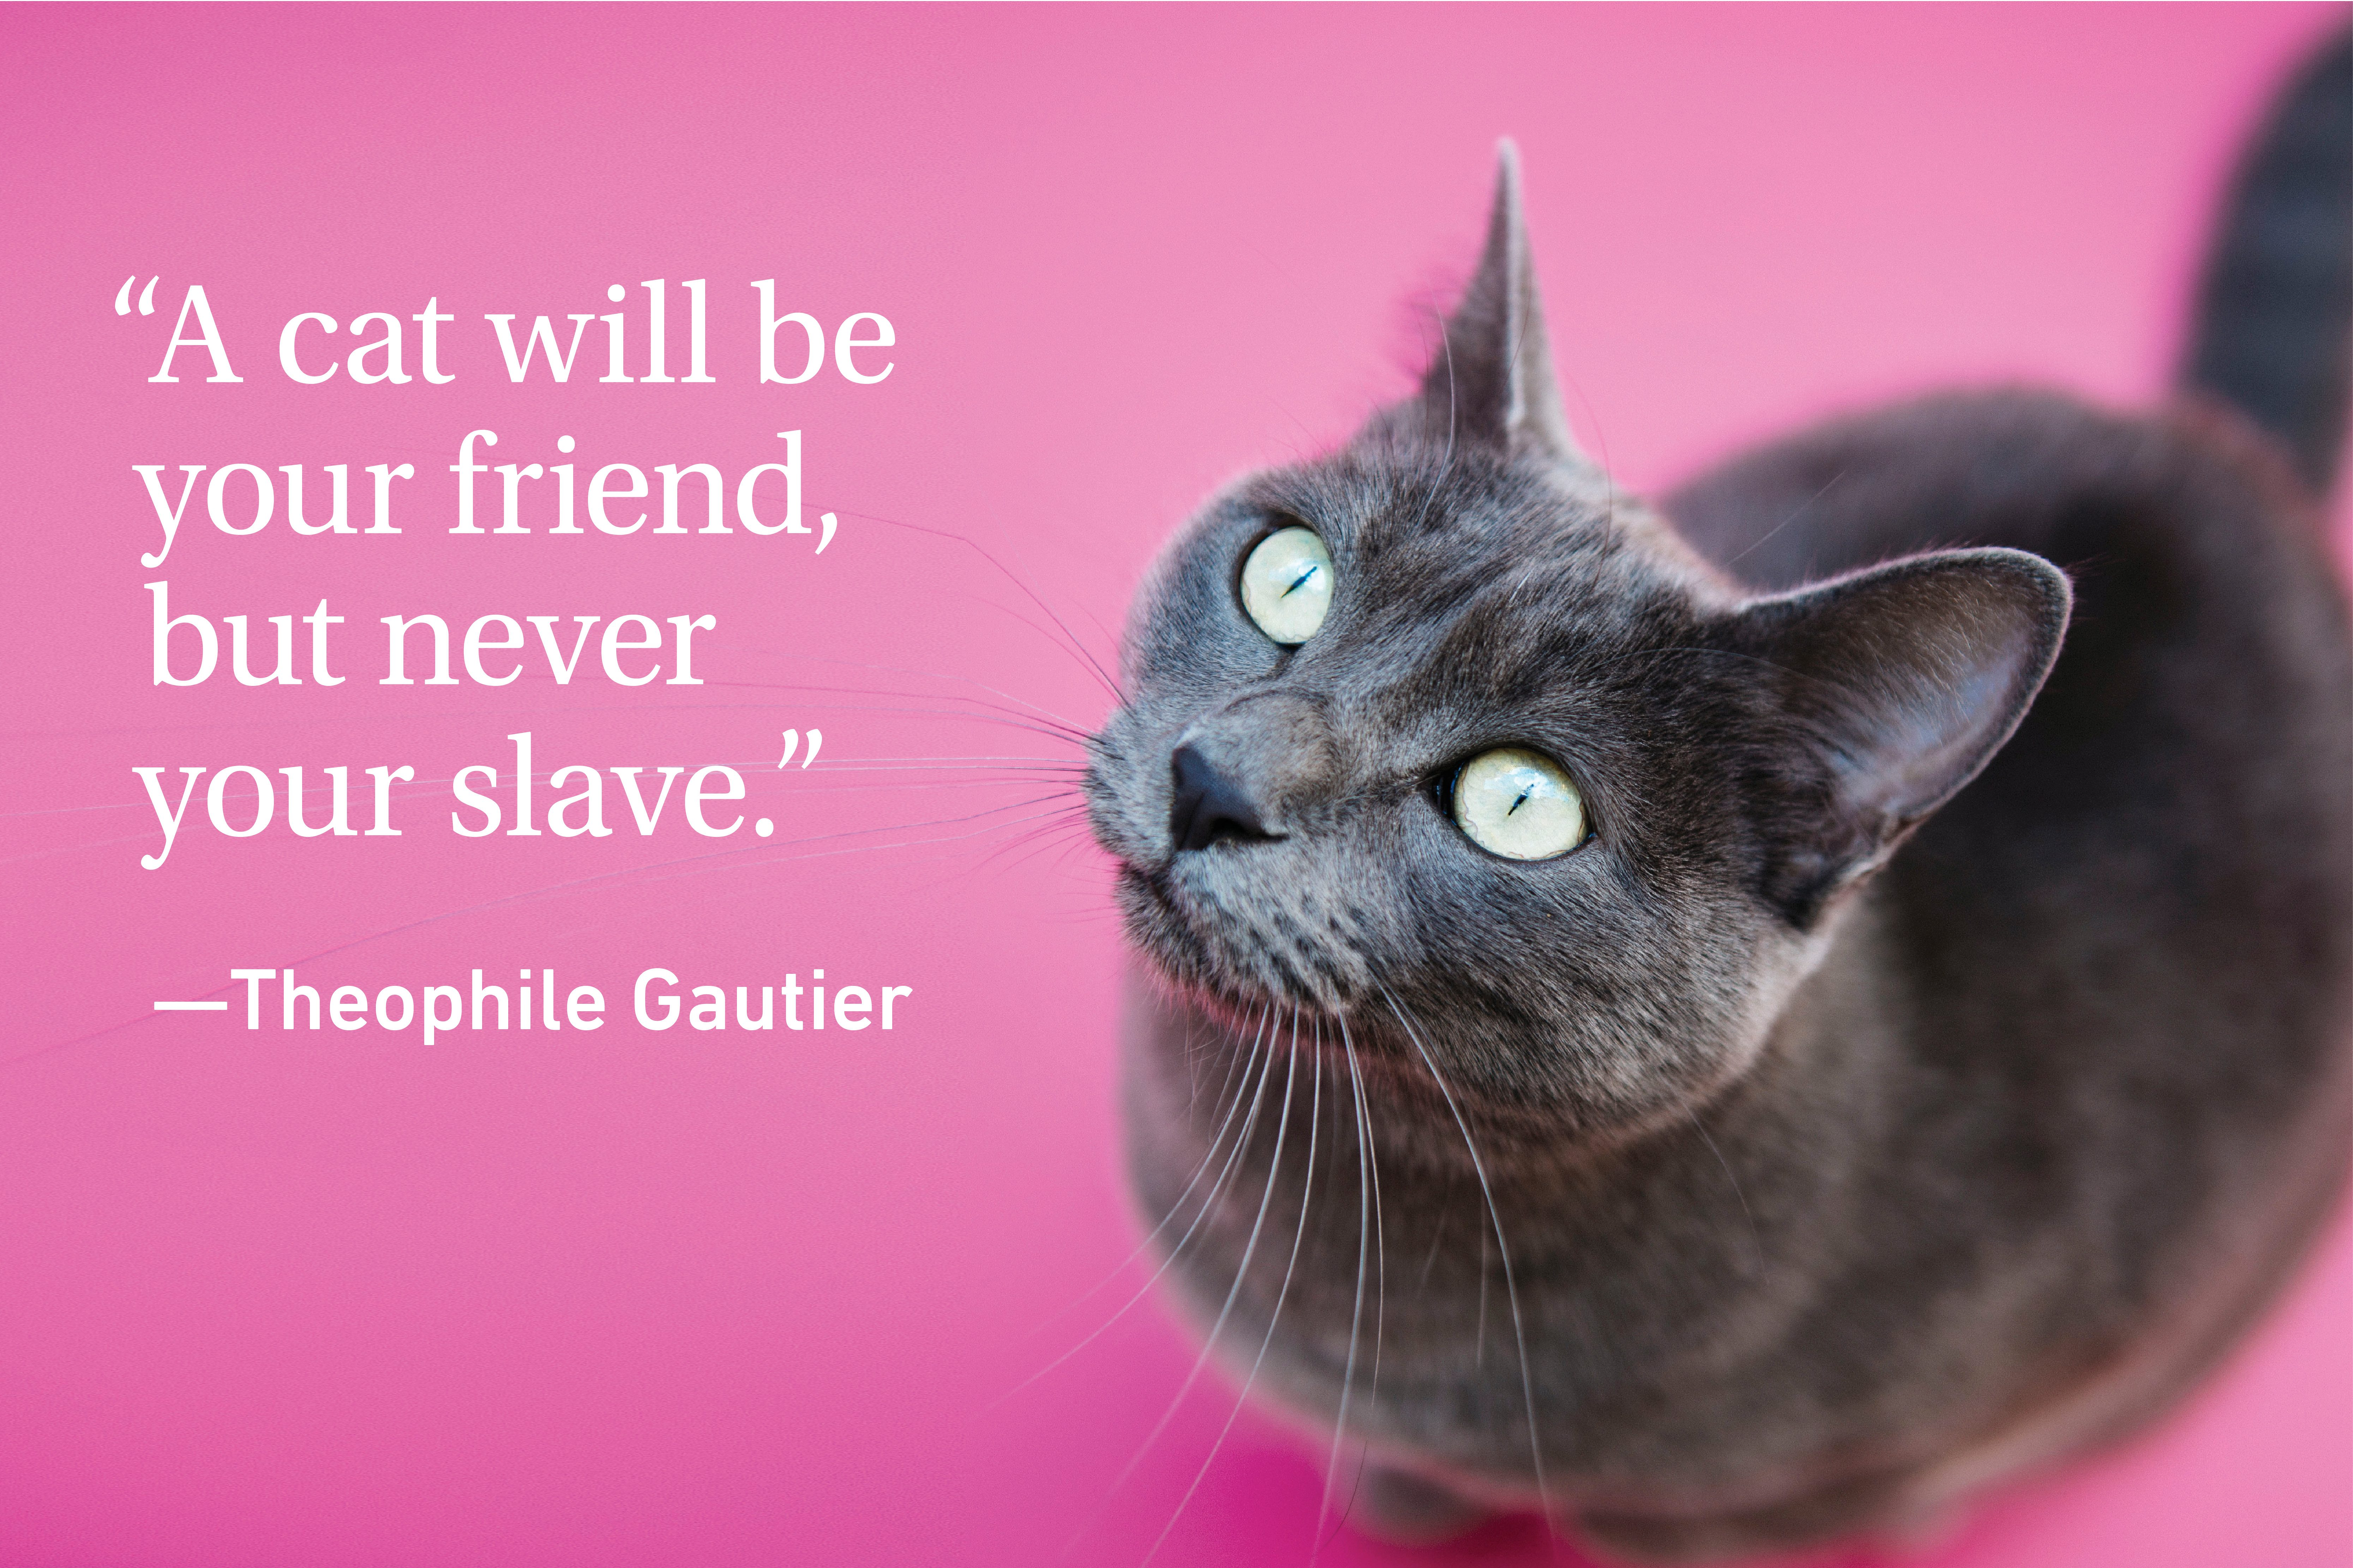 Cat quote on pink background with a grey cat